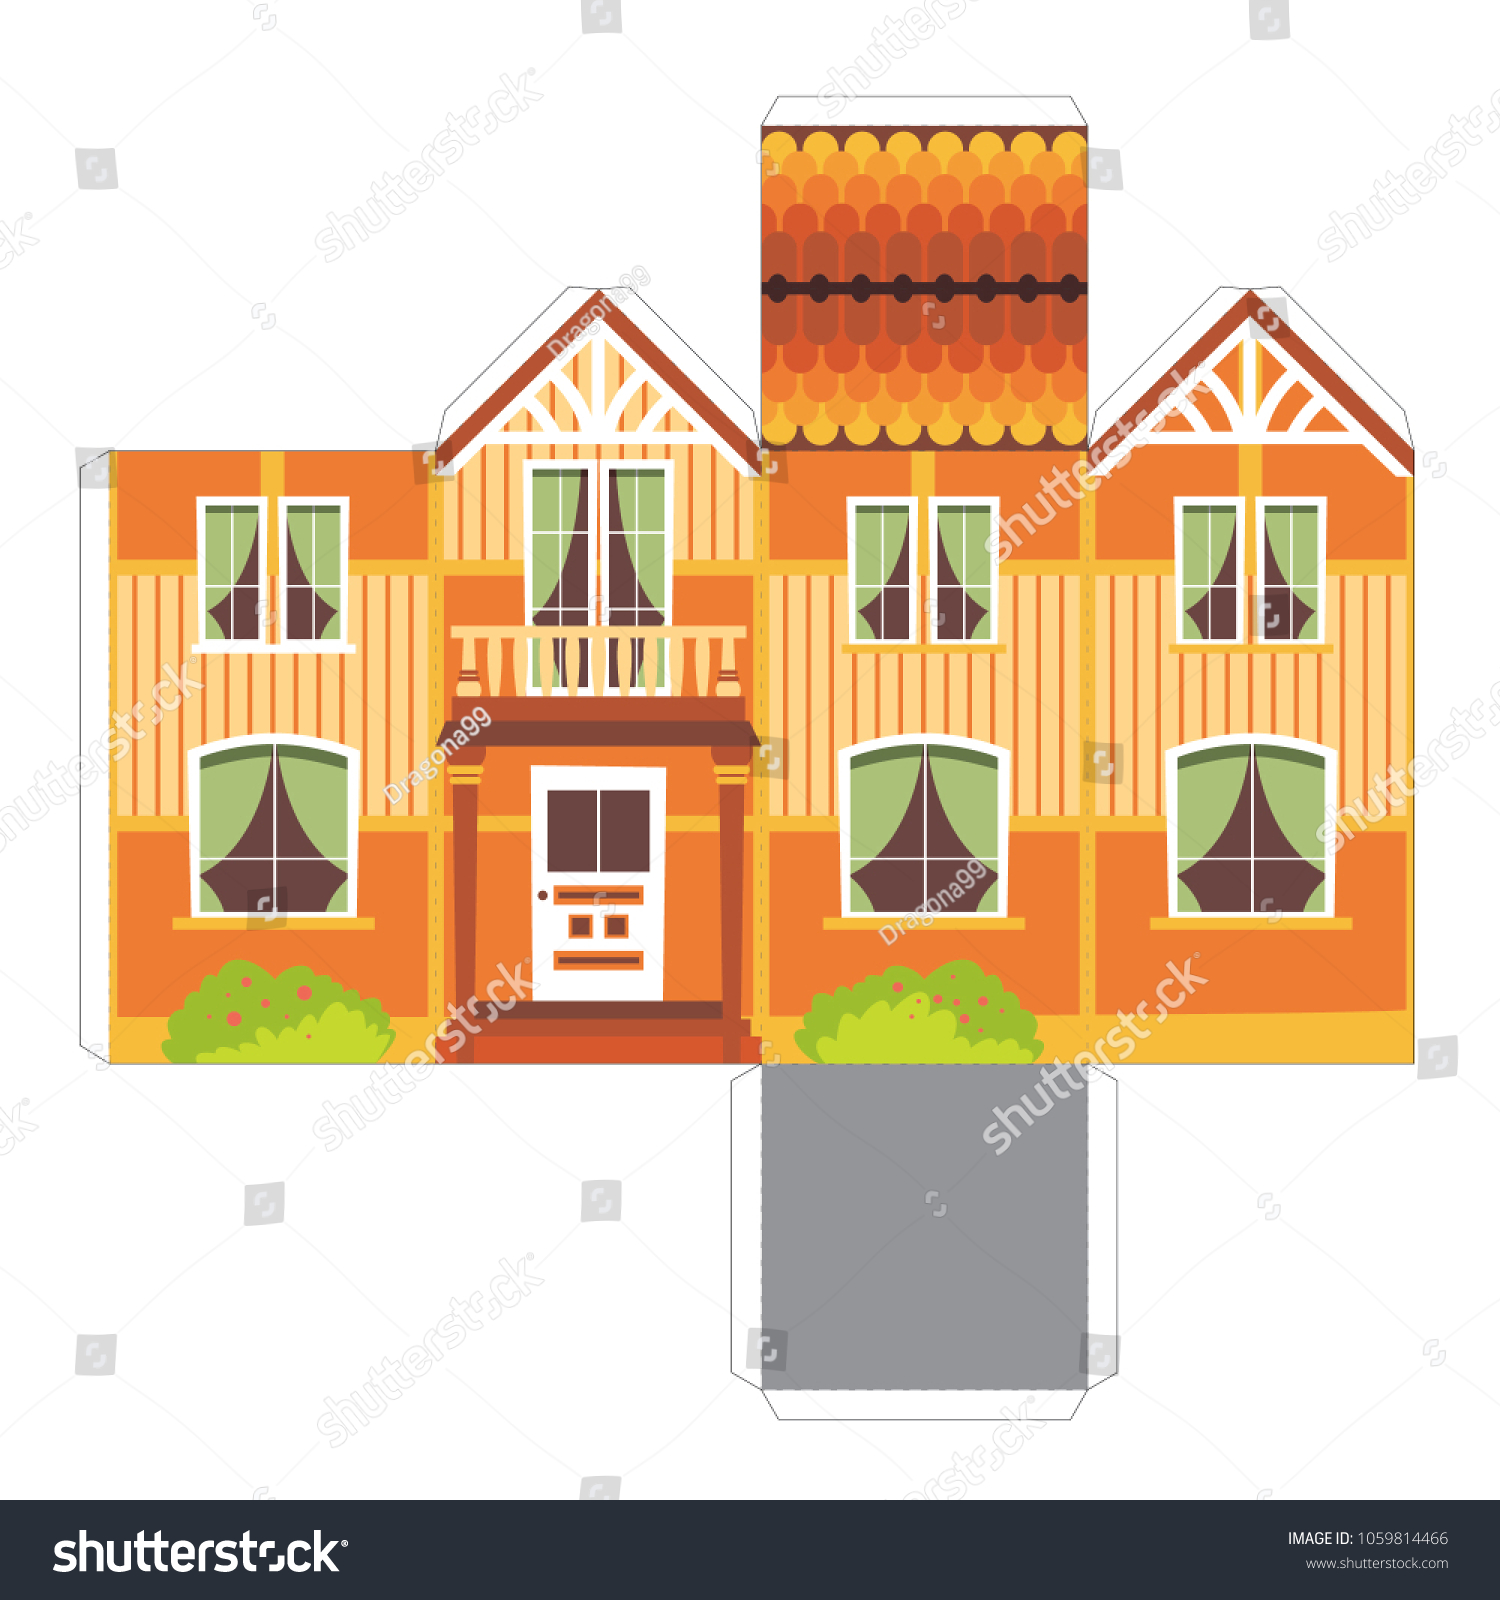 Make Your Own Toy House Paper Stock Vector (Royalty Free) 1059814466